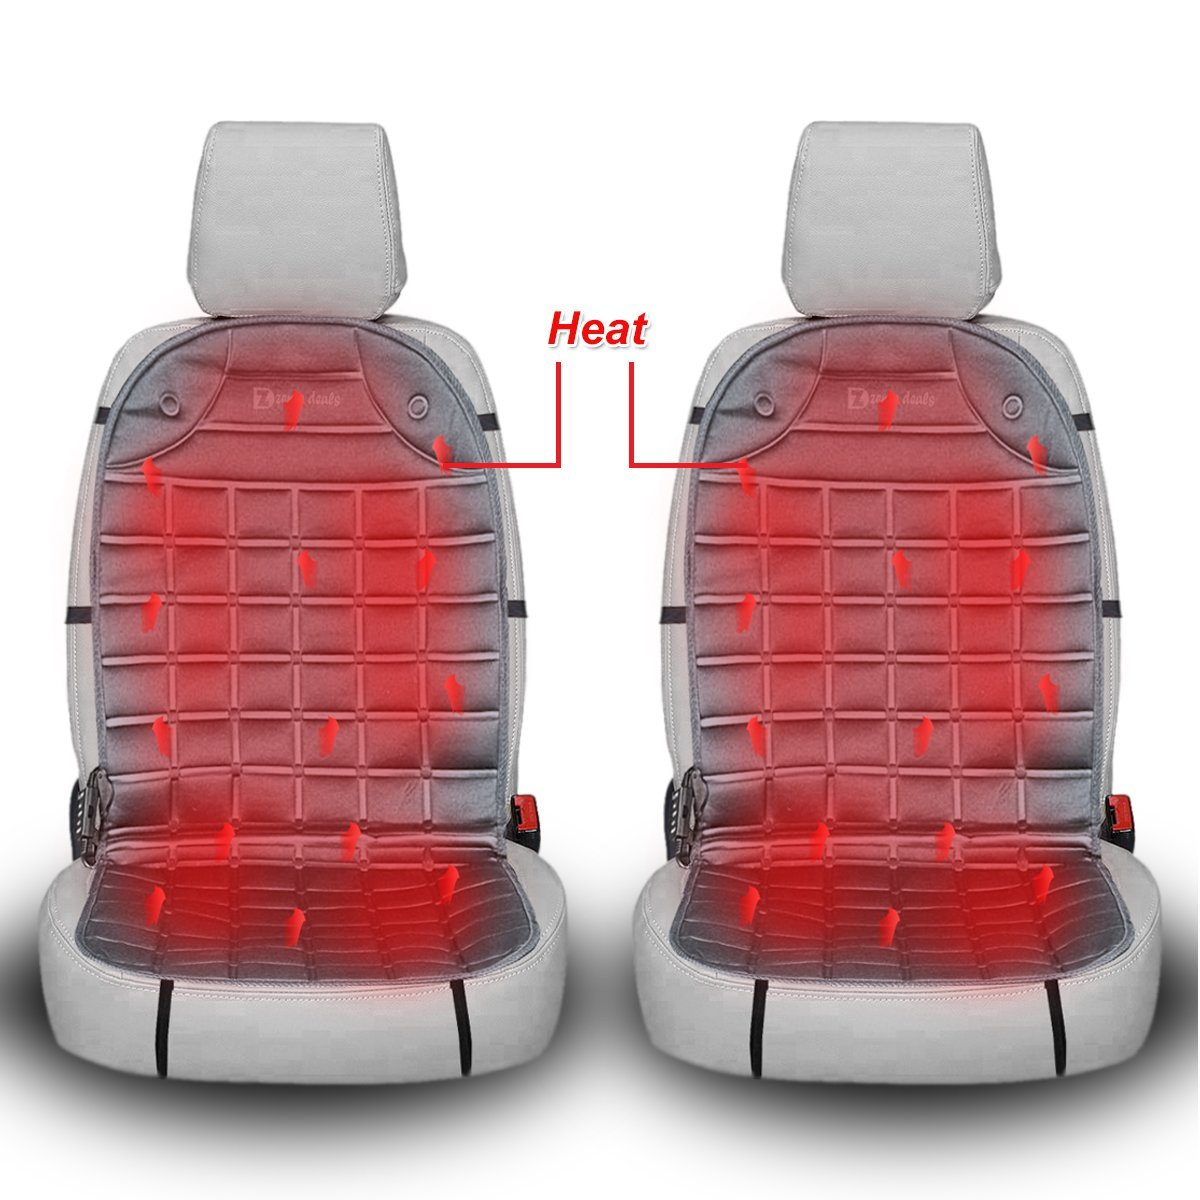 Zento Deals 12V Heated Car Seat Cover